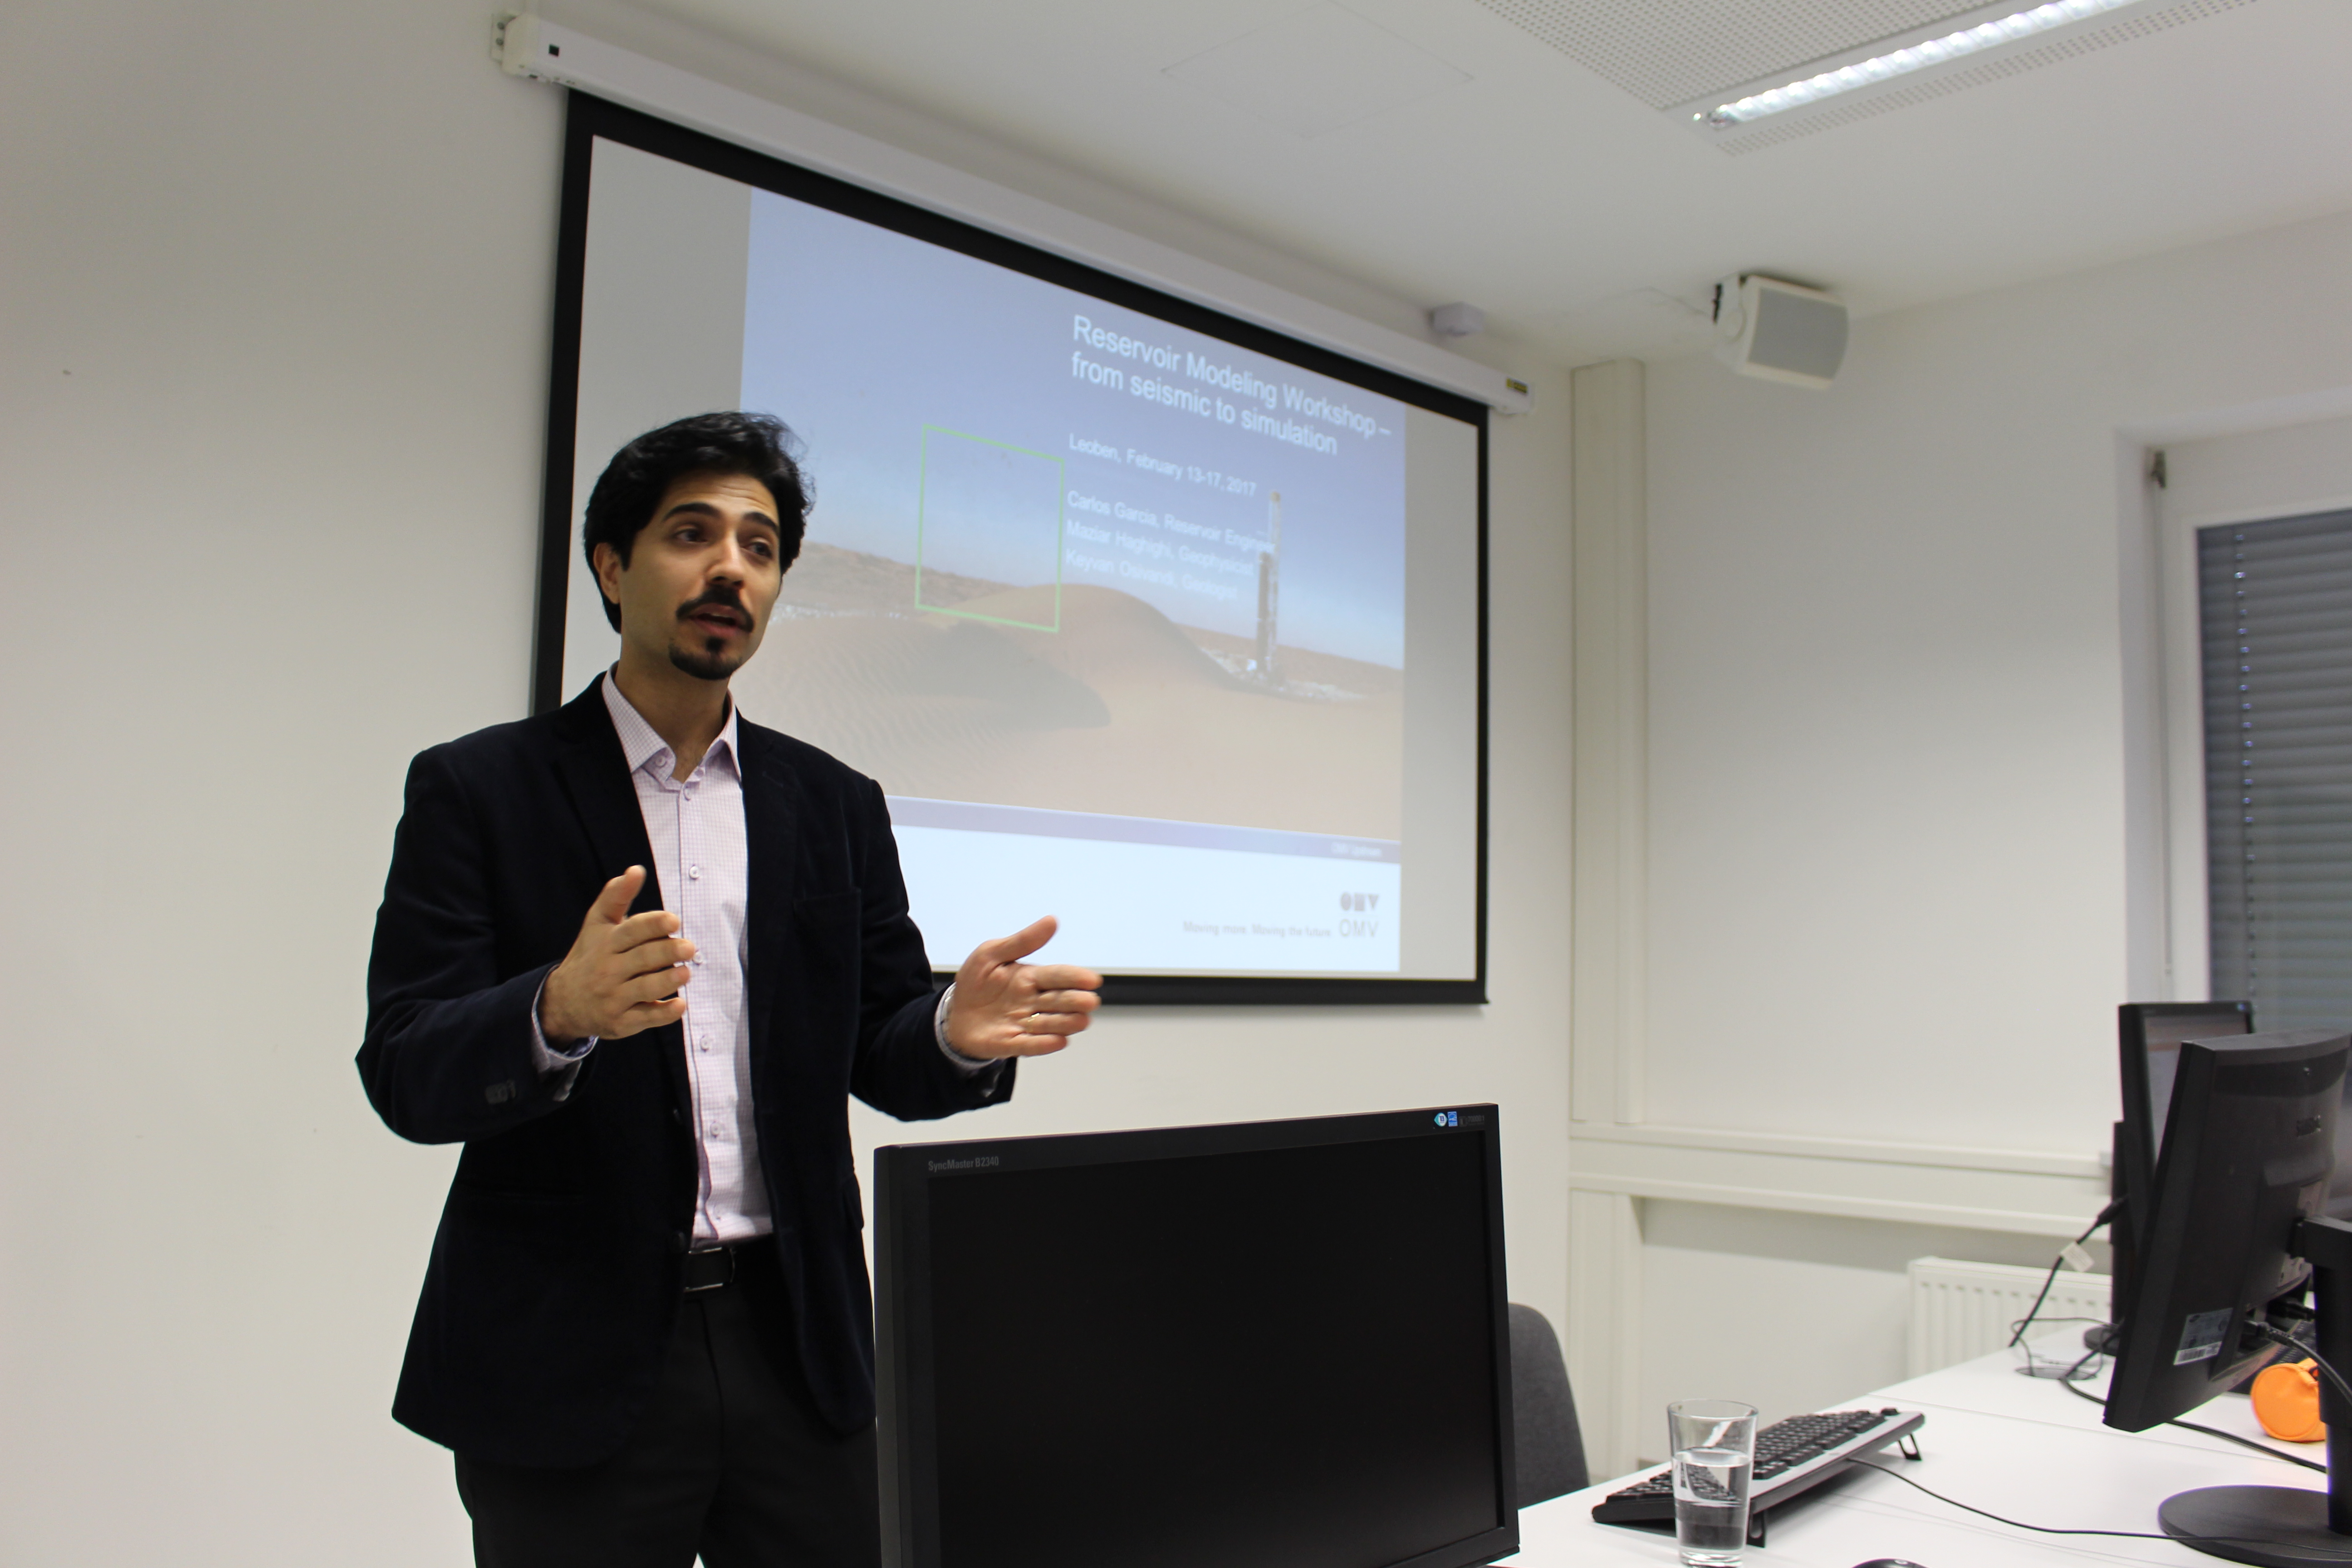 Mr. Haghighi giving an introduction into Petrel (Photo Credit: Thomas Herzog)